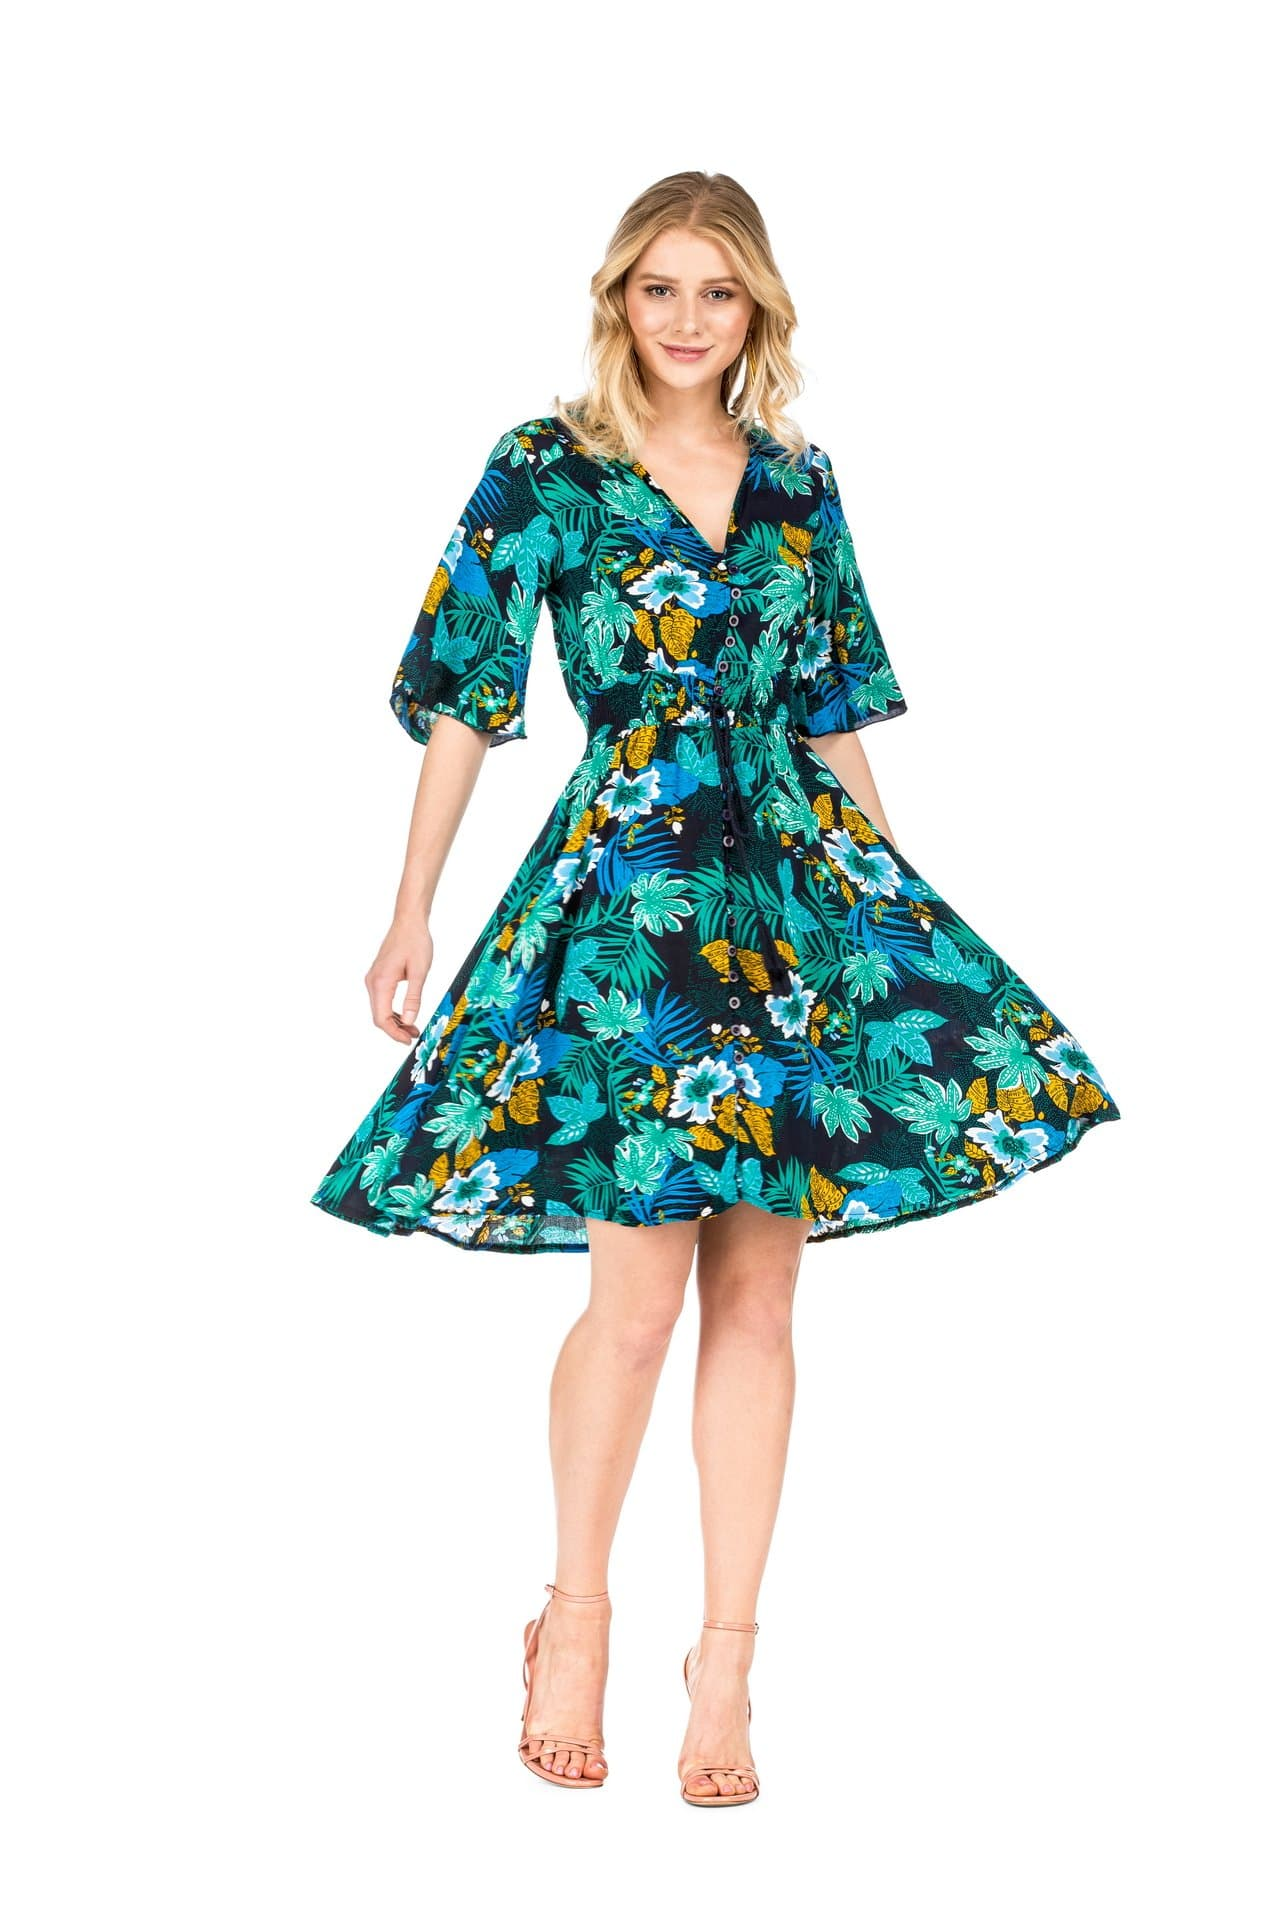 DAILYHAUTE Women's dress GREEN / S Haute Edition Women's Button Up Floral Party Dress